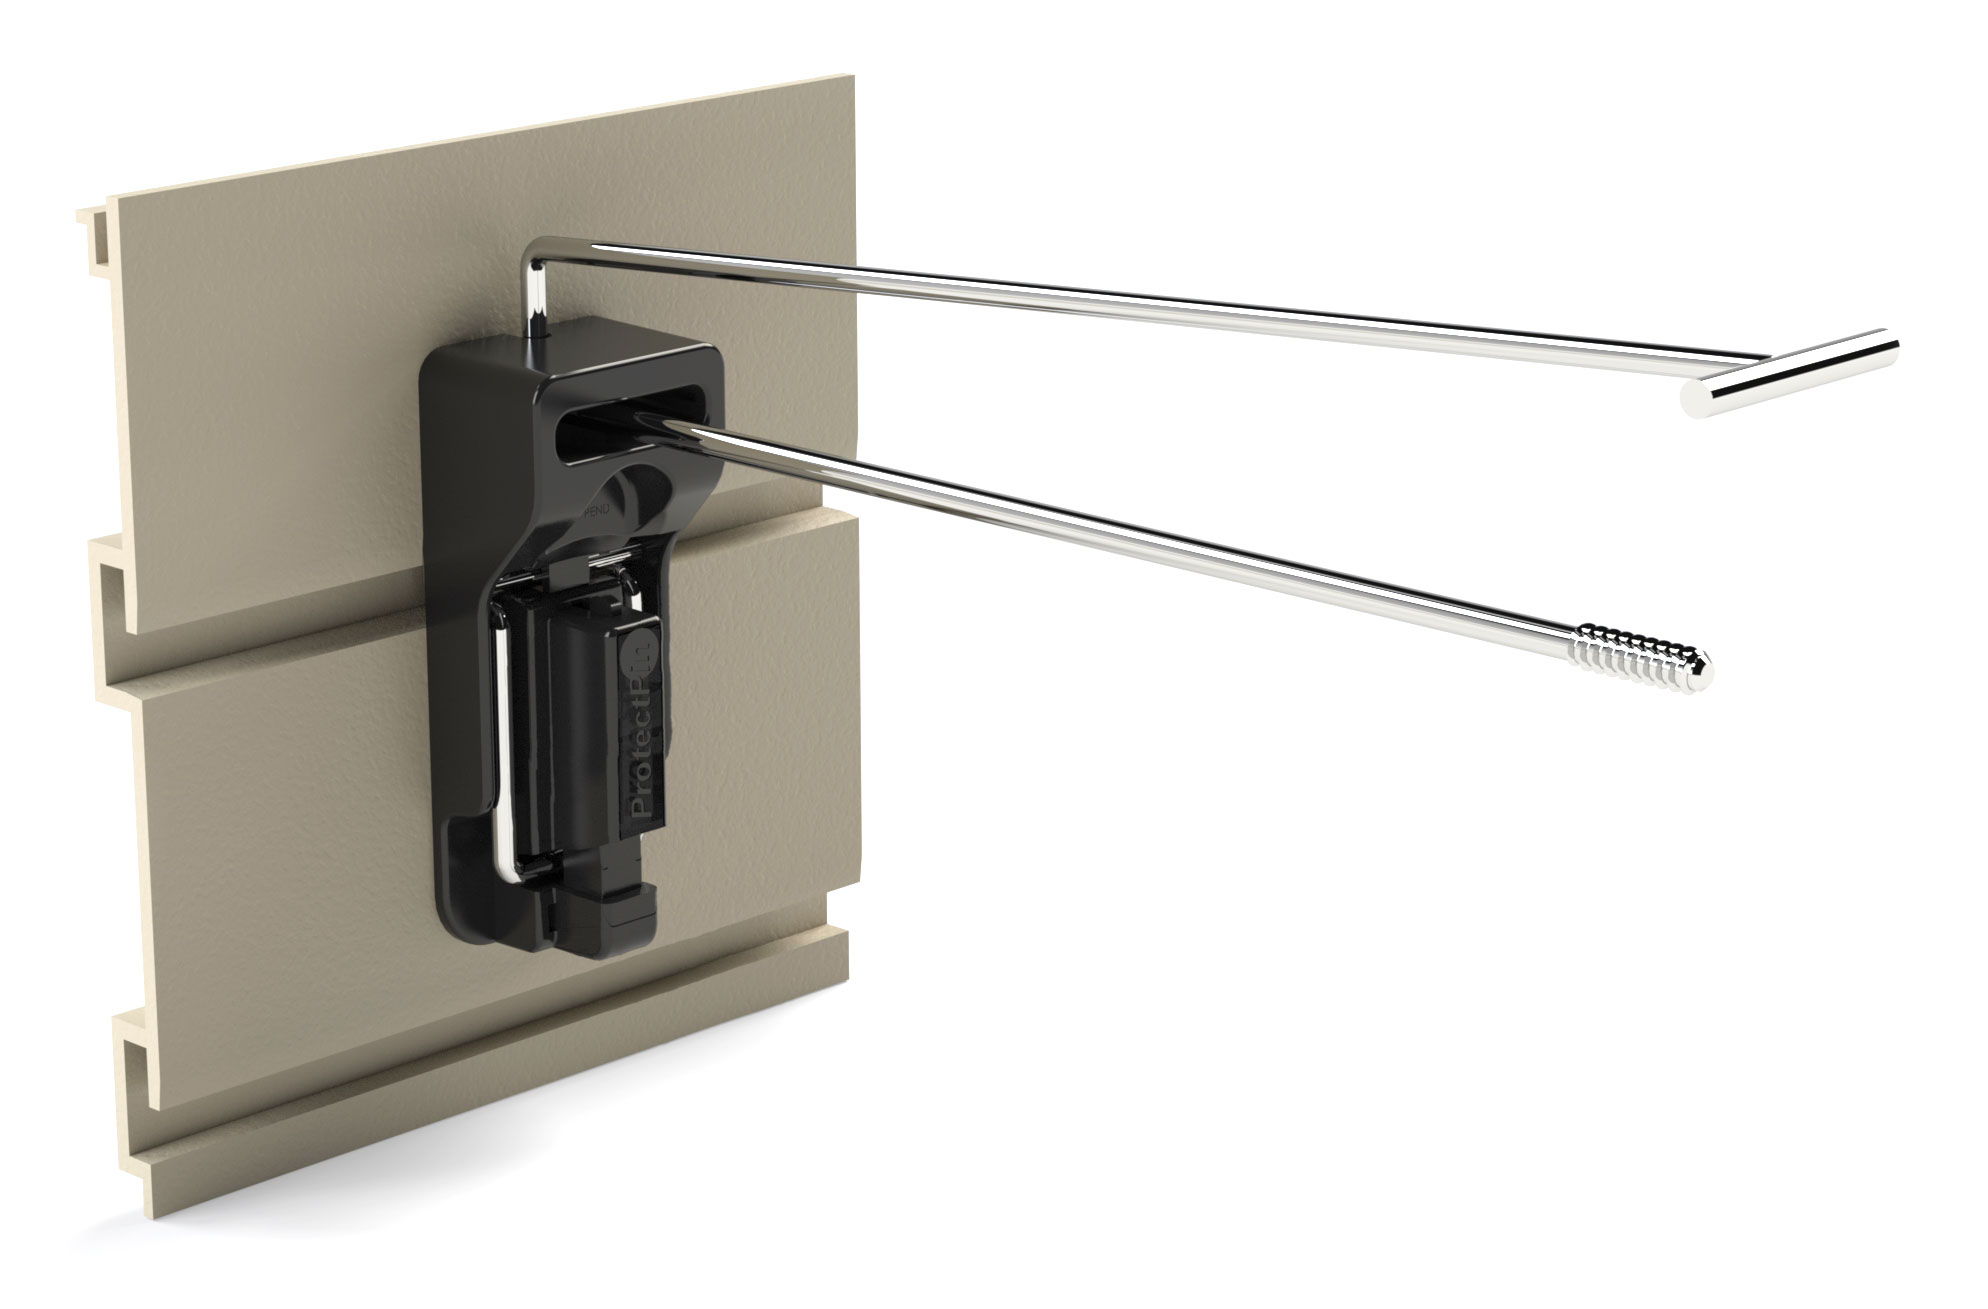 ProtectPin SpinTag | On grooved metal sheet panel